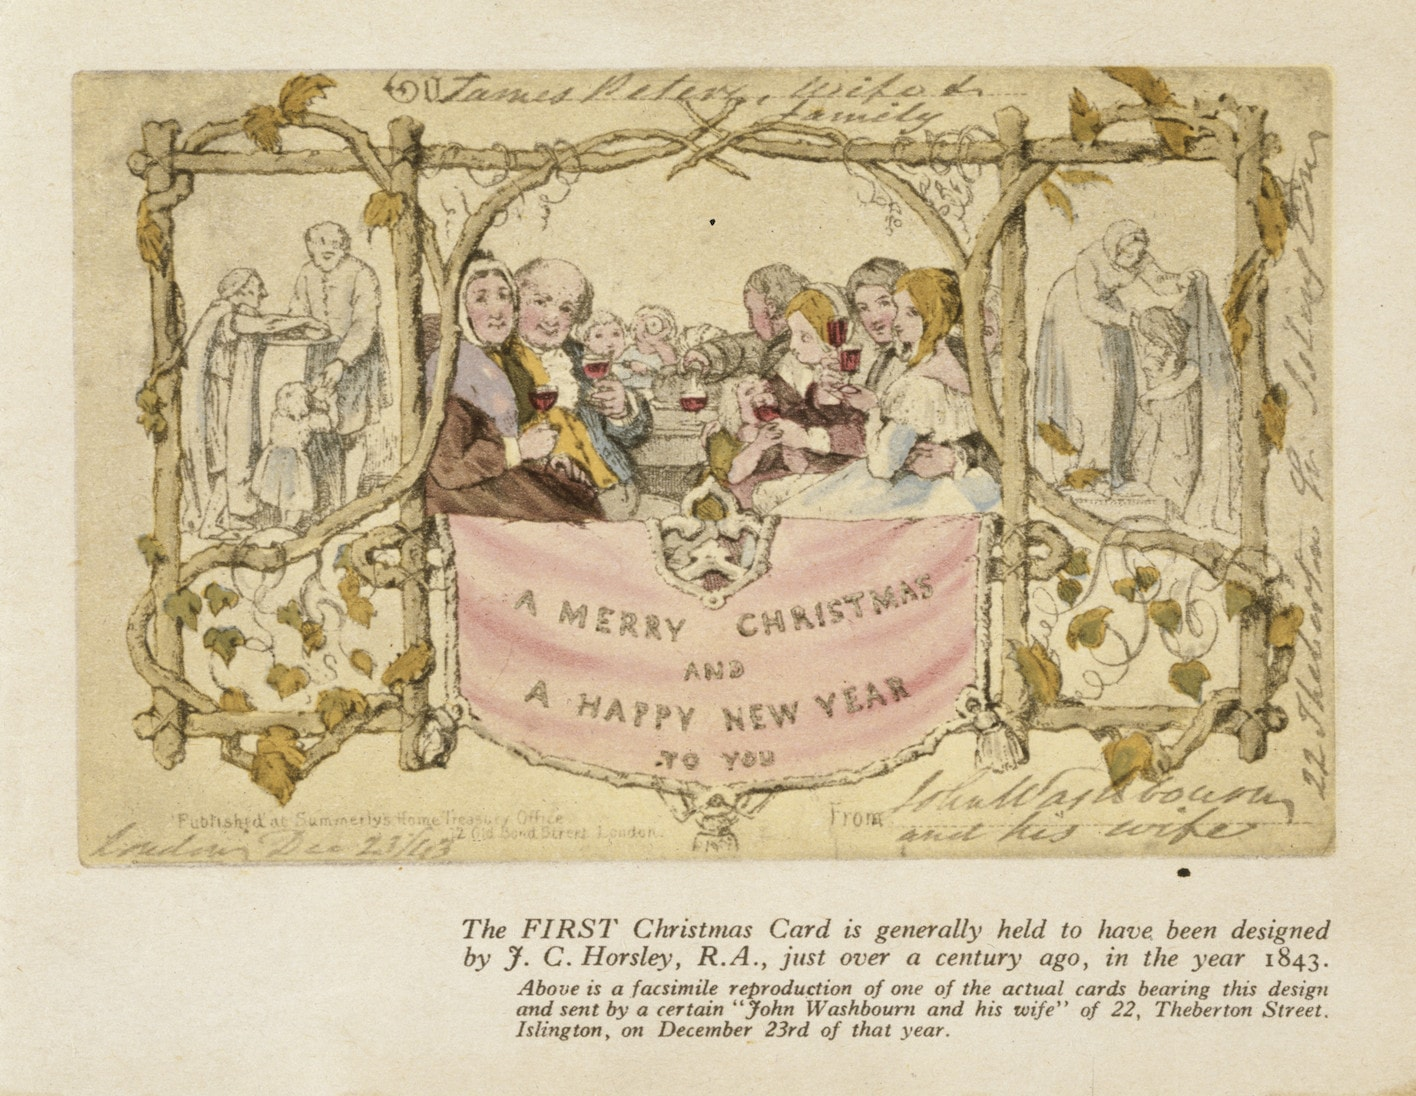 The Tale Of The First Ever Christmas Card And Its Fascinating Design